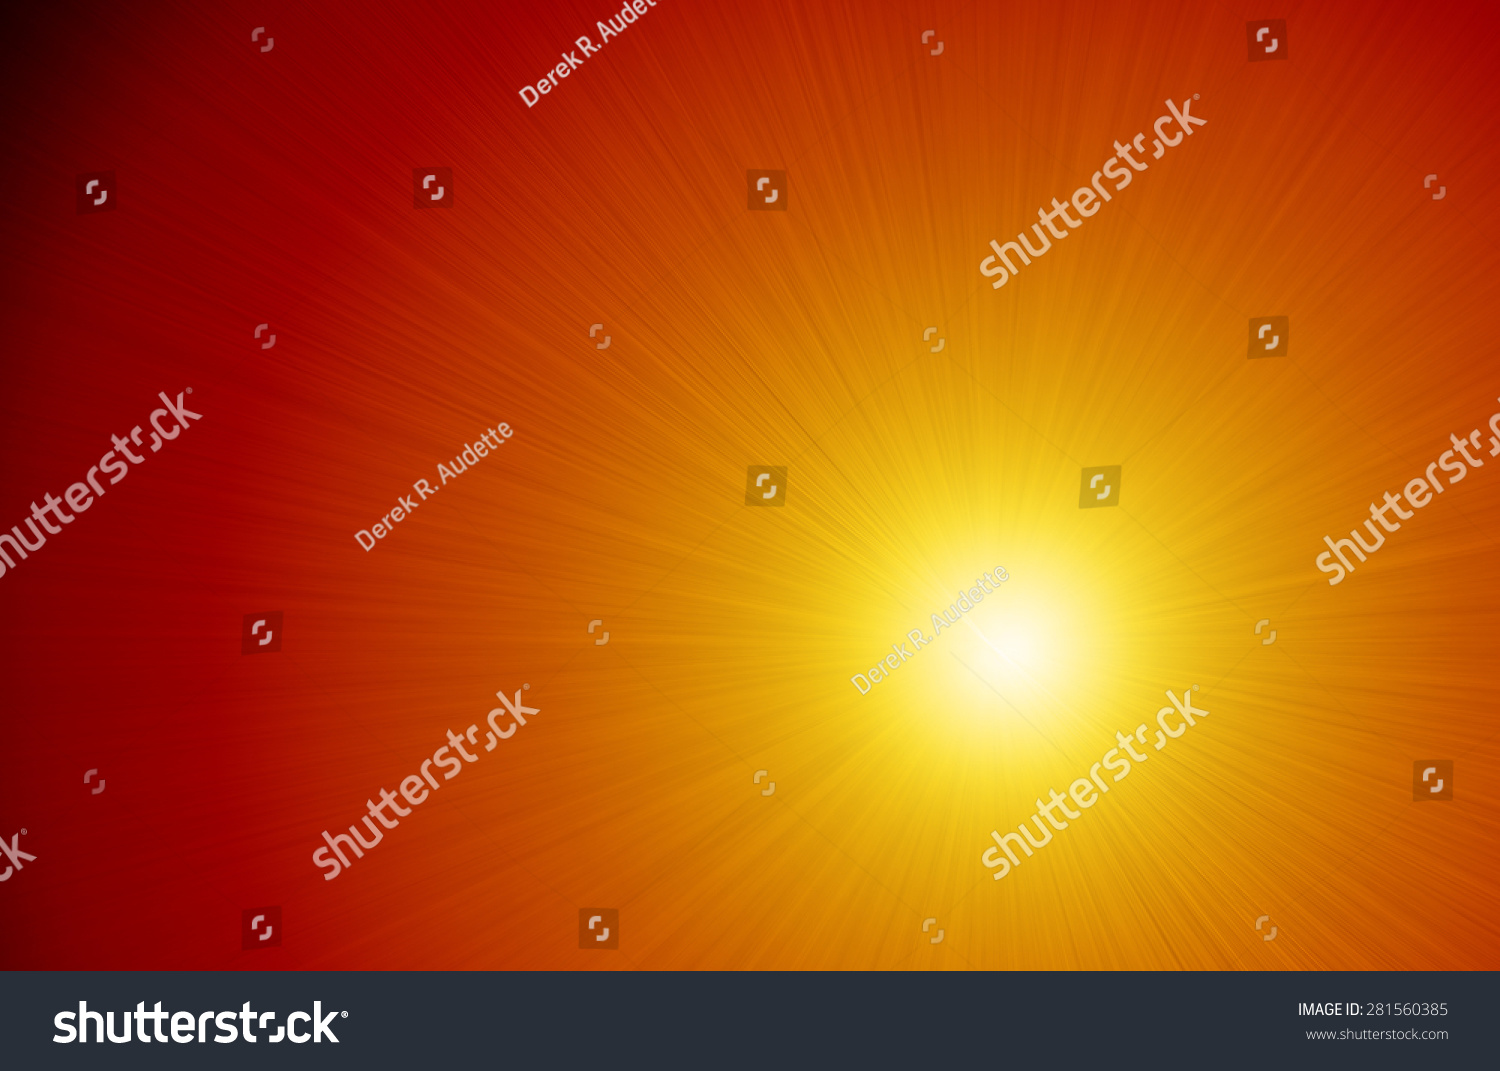 Graphic Design Illustration Intense Light Ray Stock Illustration ...